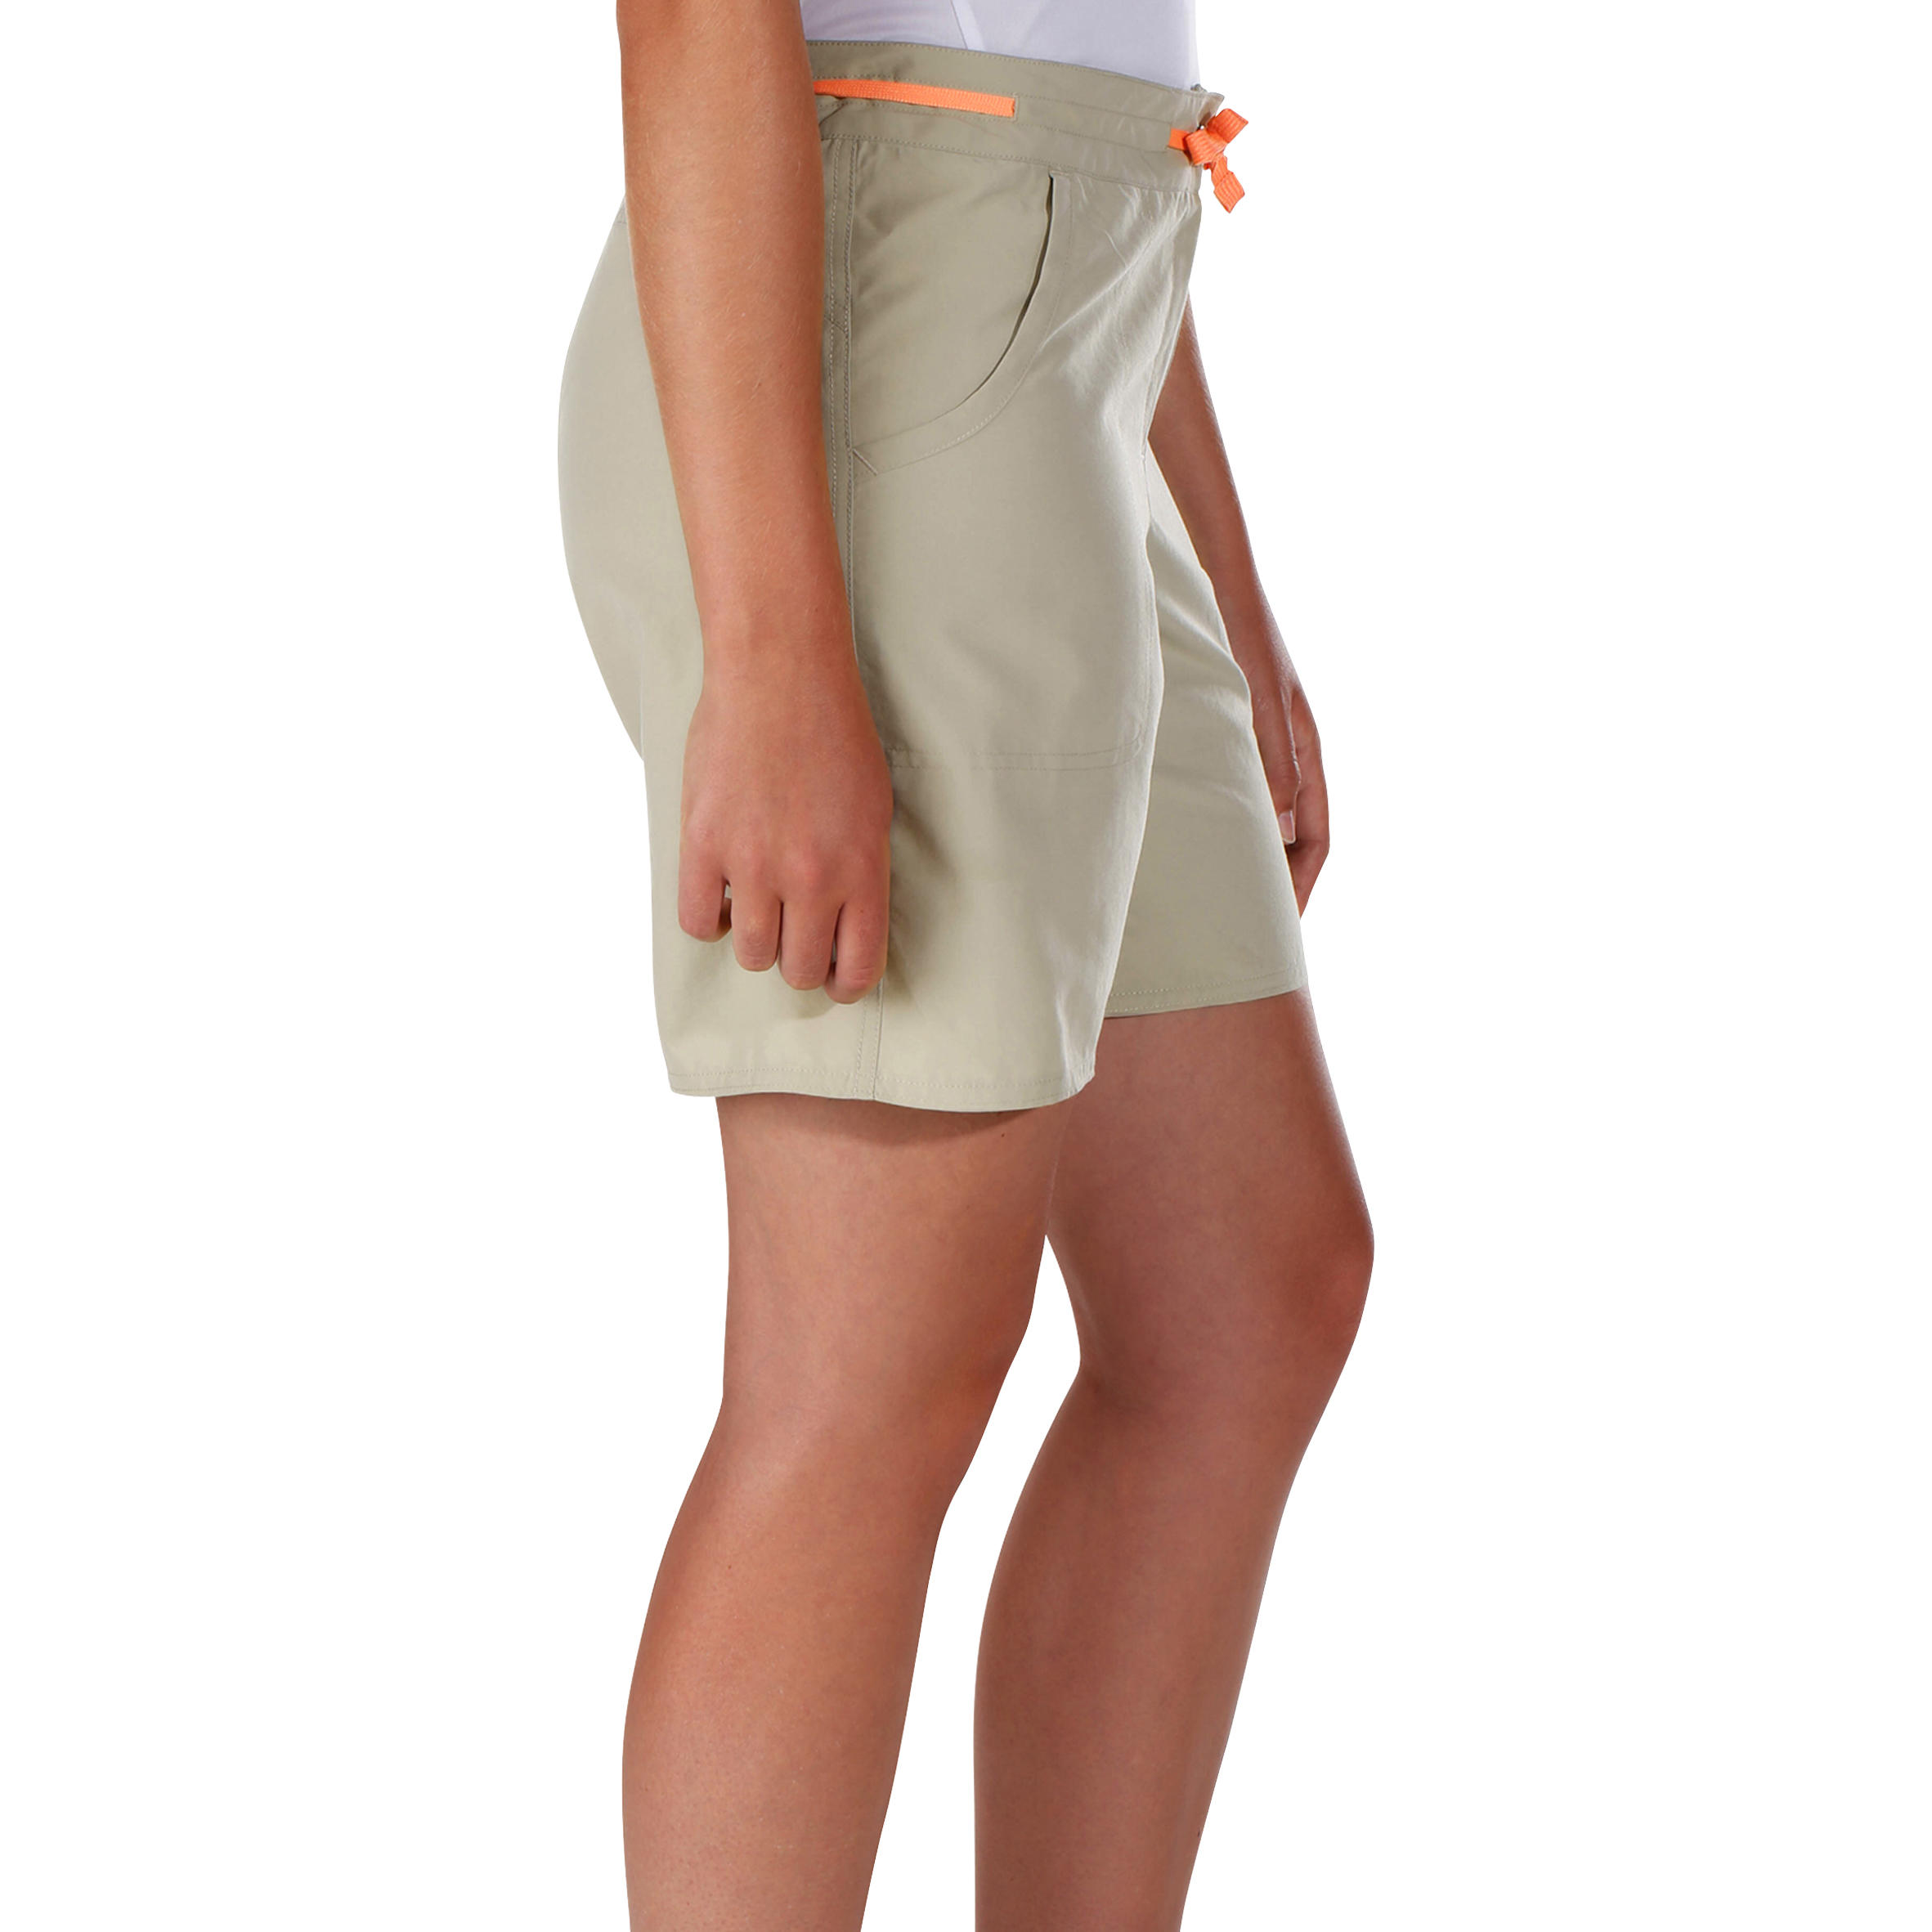 Women's Hiking Shorts Forclaz50 - Beige